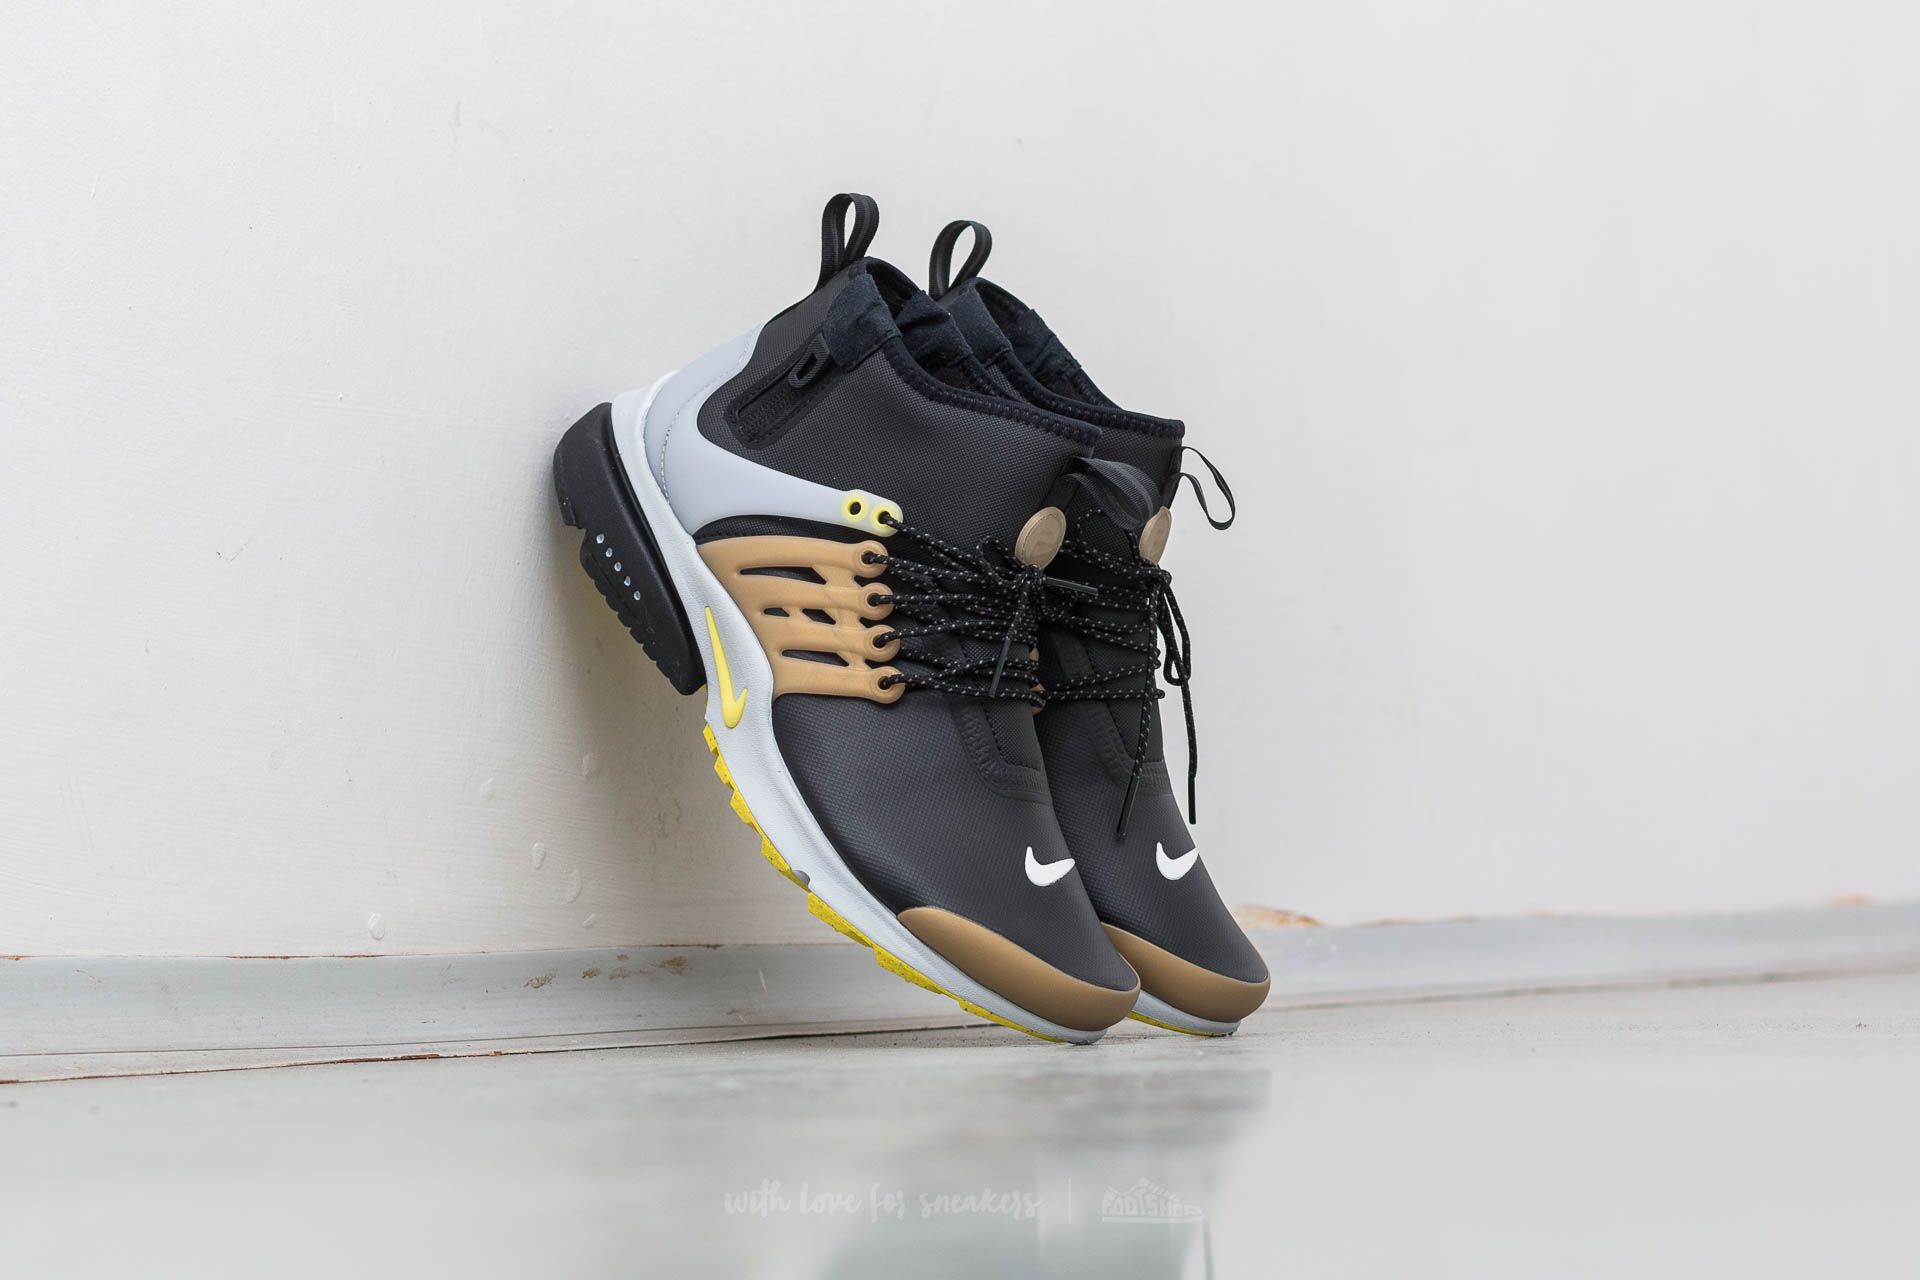 Nike Air Presto MID Utility Black/ Yellow Streak - 12035